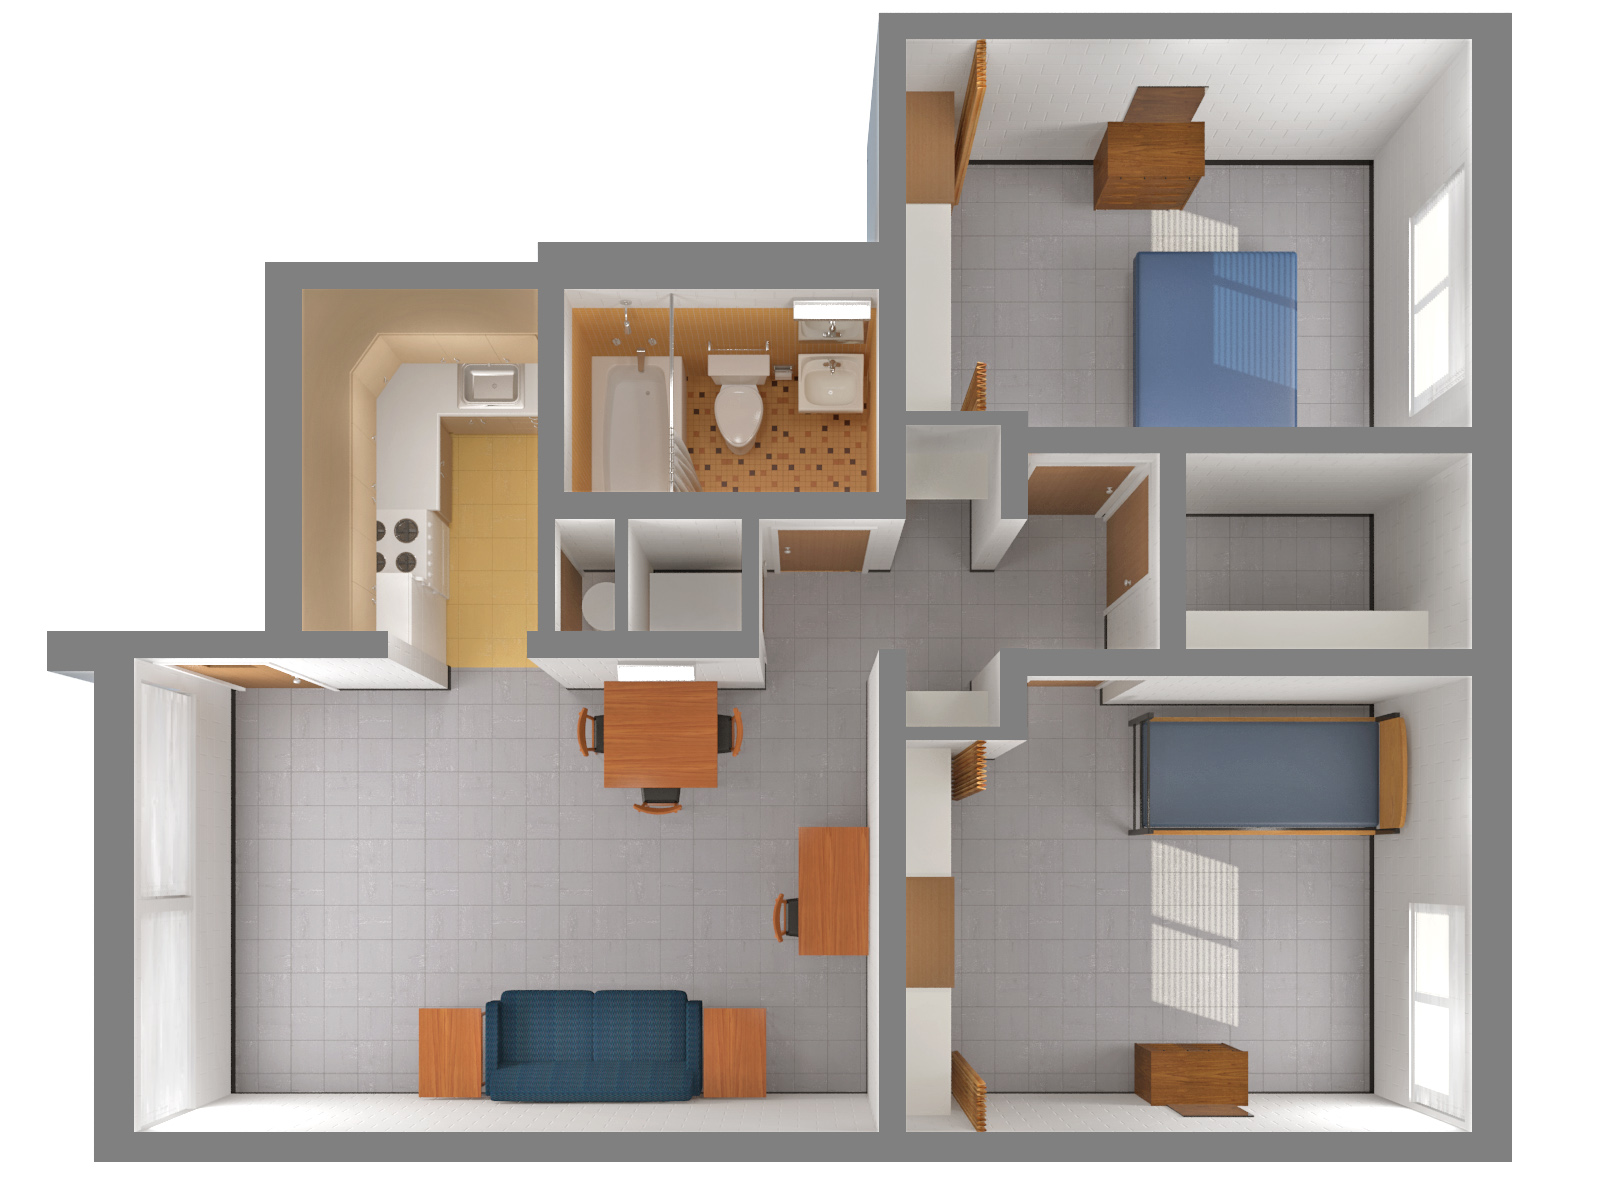 2 Bedroom Furnished Apartment 2 Top. Orchard Downs Layouts  University Housing at the University of